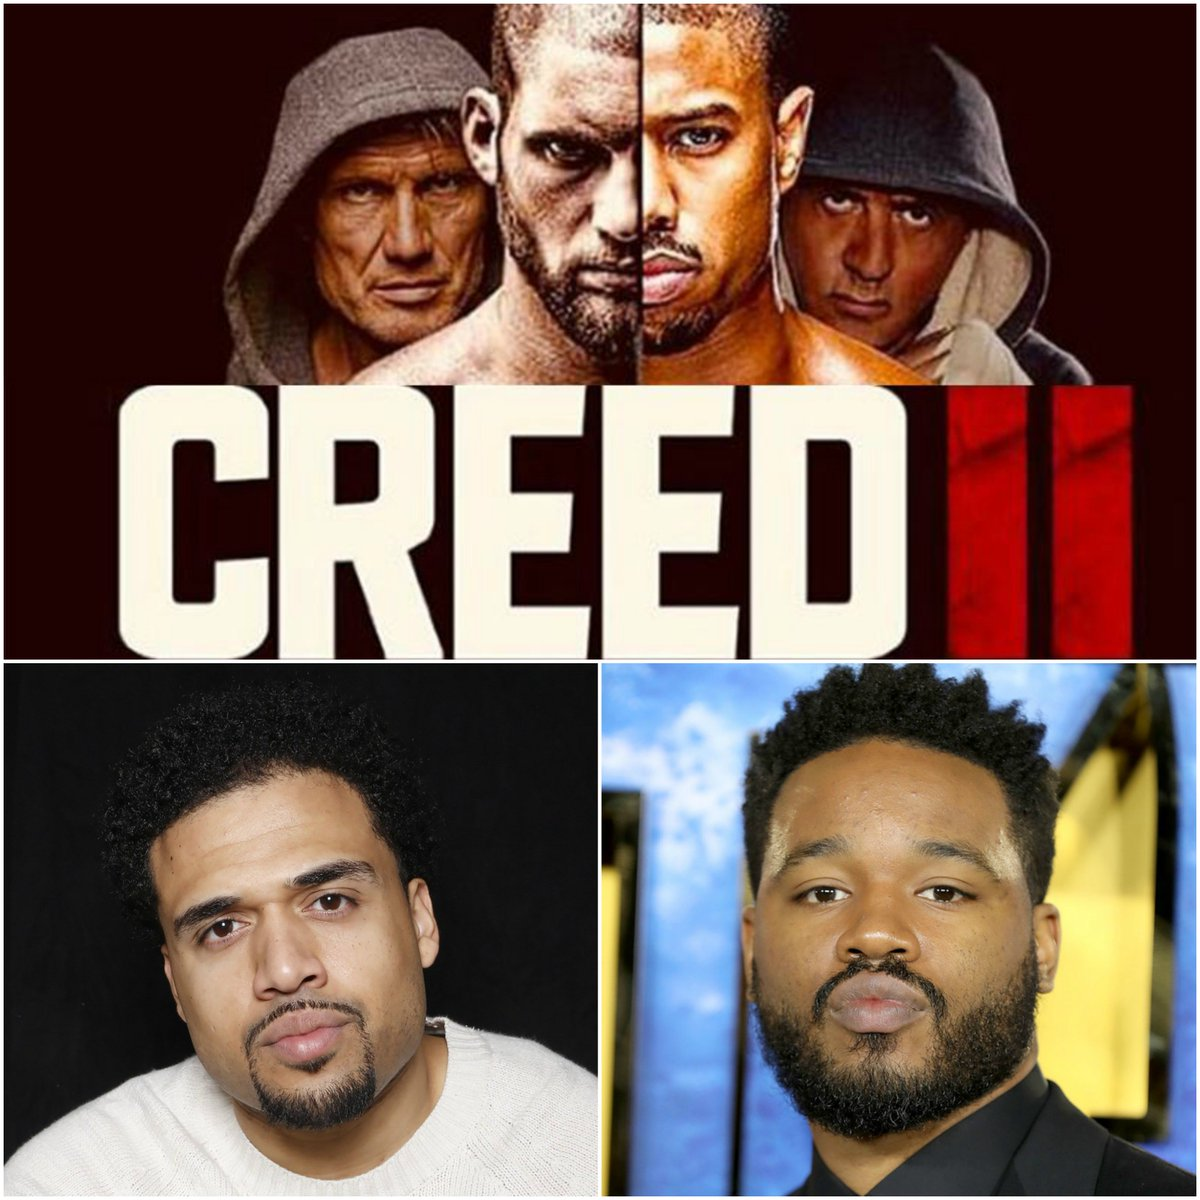 Wilson Morales On Twitter Production Begins On Creed Ii W